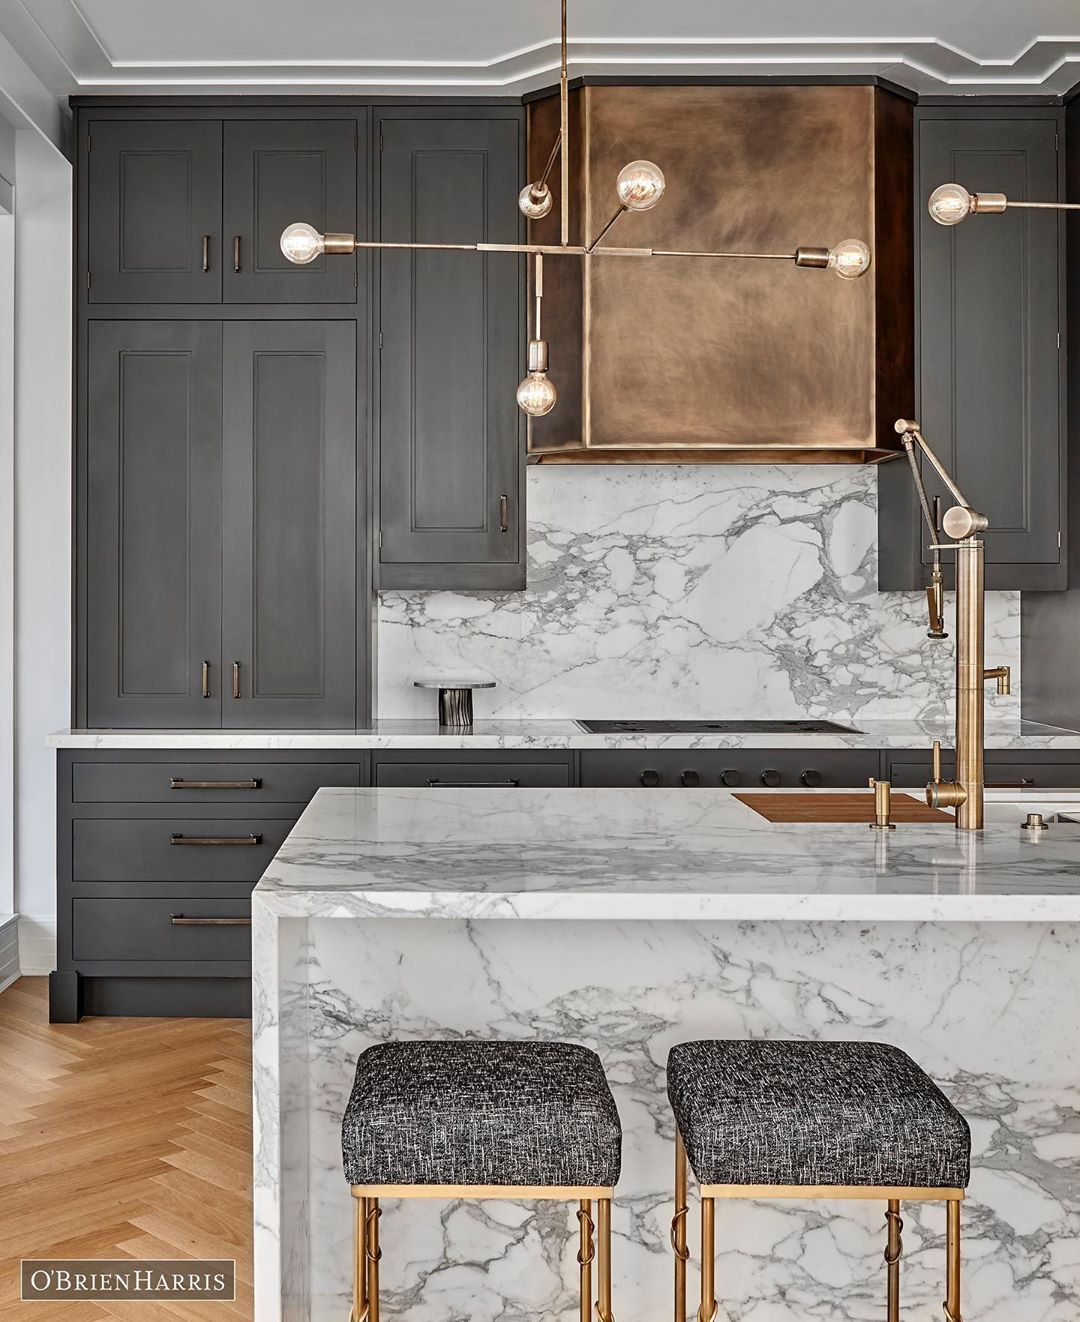 O Brien Harris On Instagram Hand Painted Charcoal Cabinetry With Burnished Brass Accents Combine For This Luxurious Loo Rustic Kitchen Design Home Decor Home